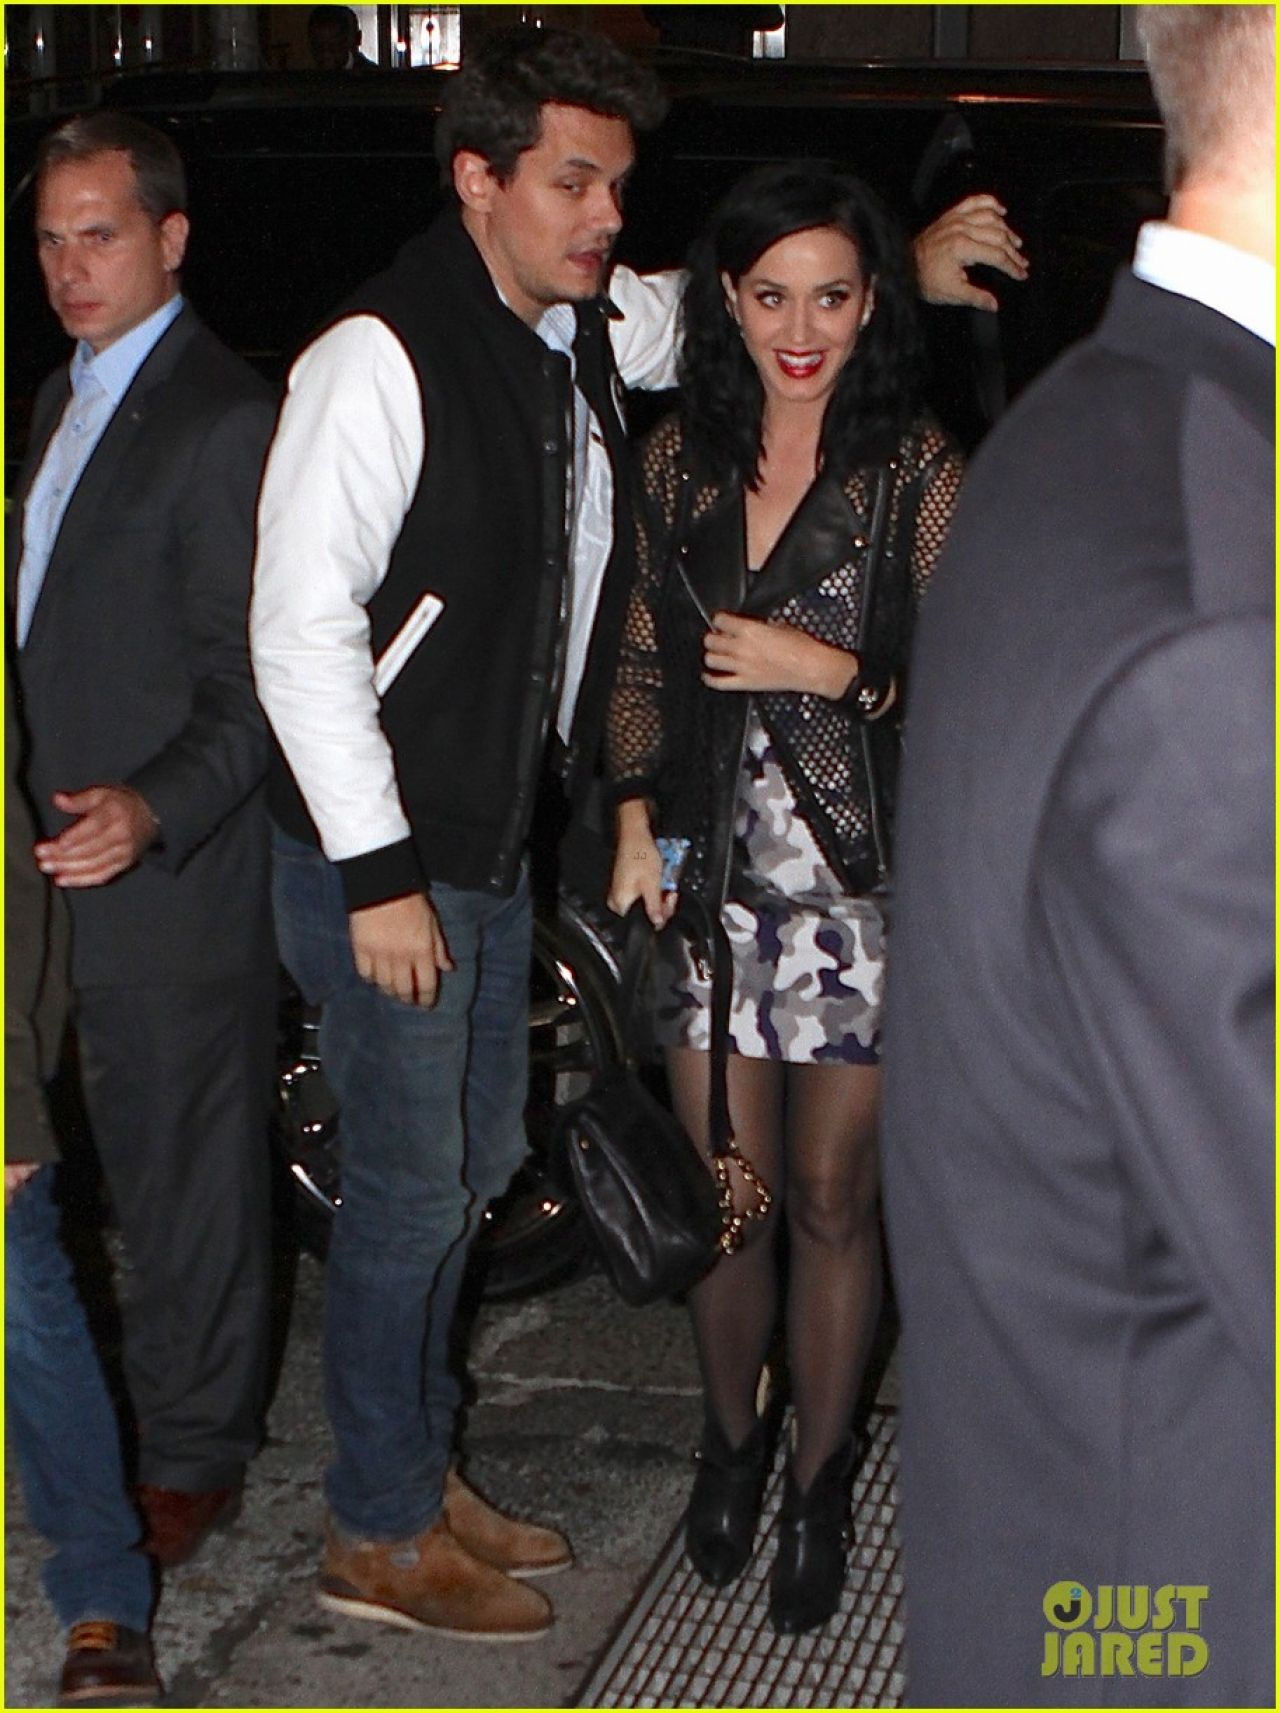 Katy Perry Photos - Saturday Night Live after party in New York